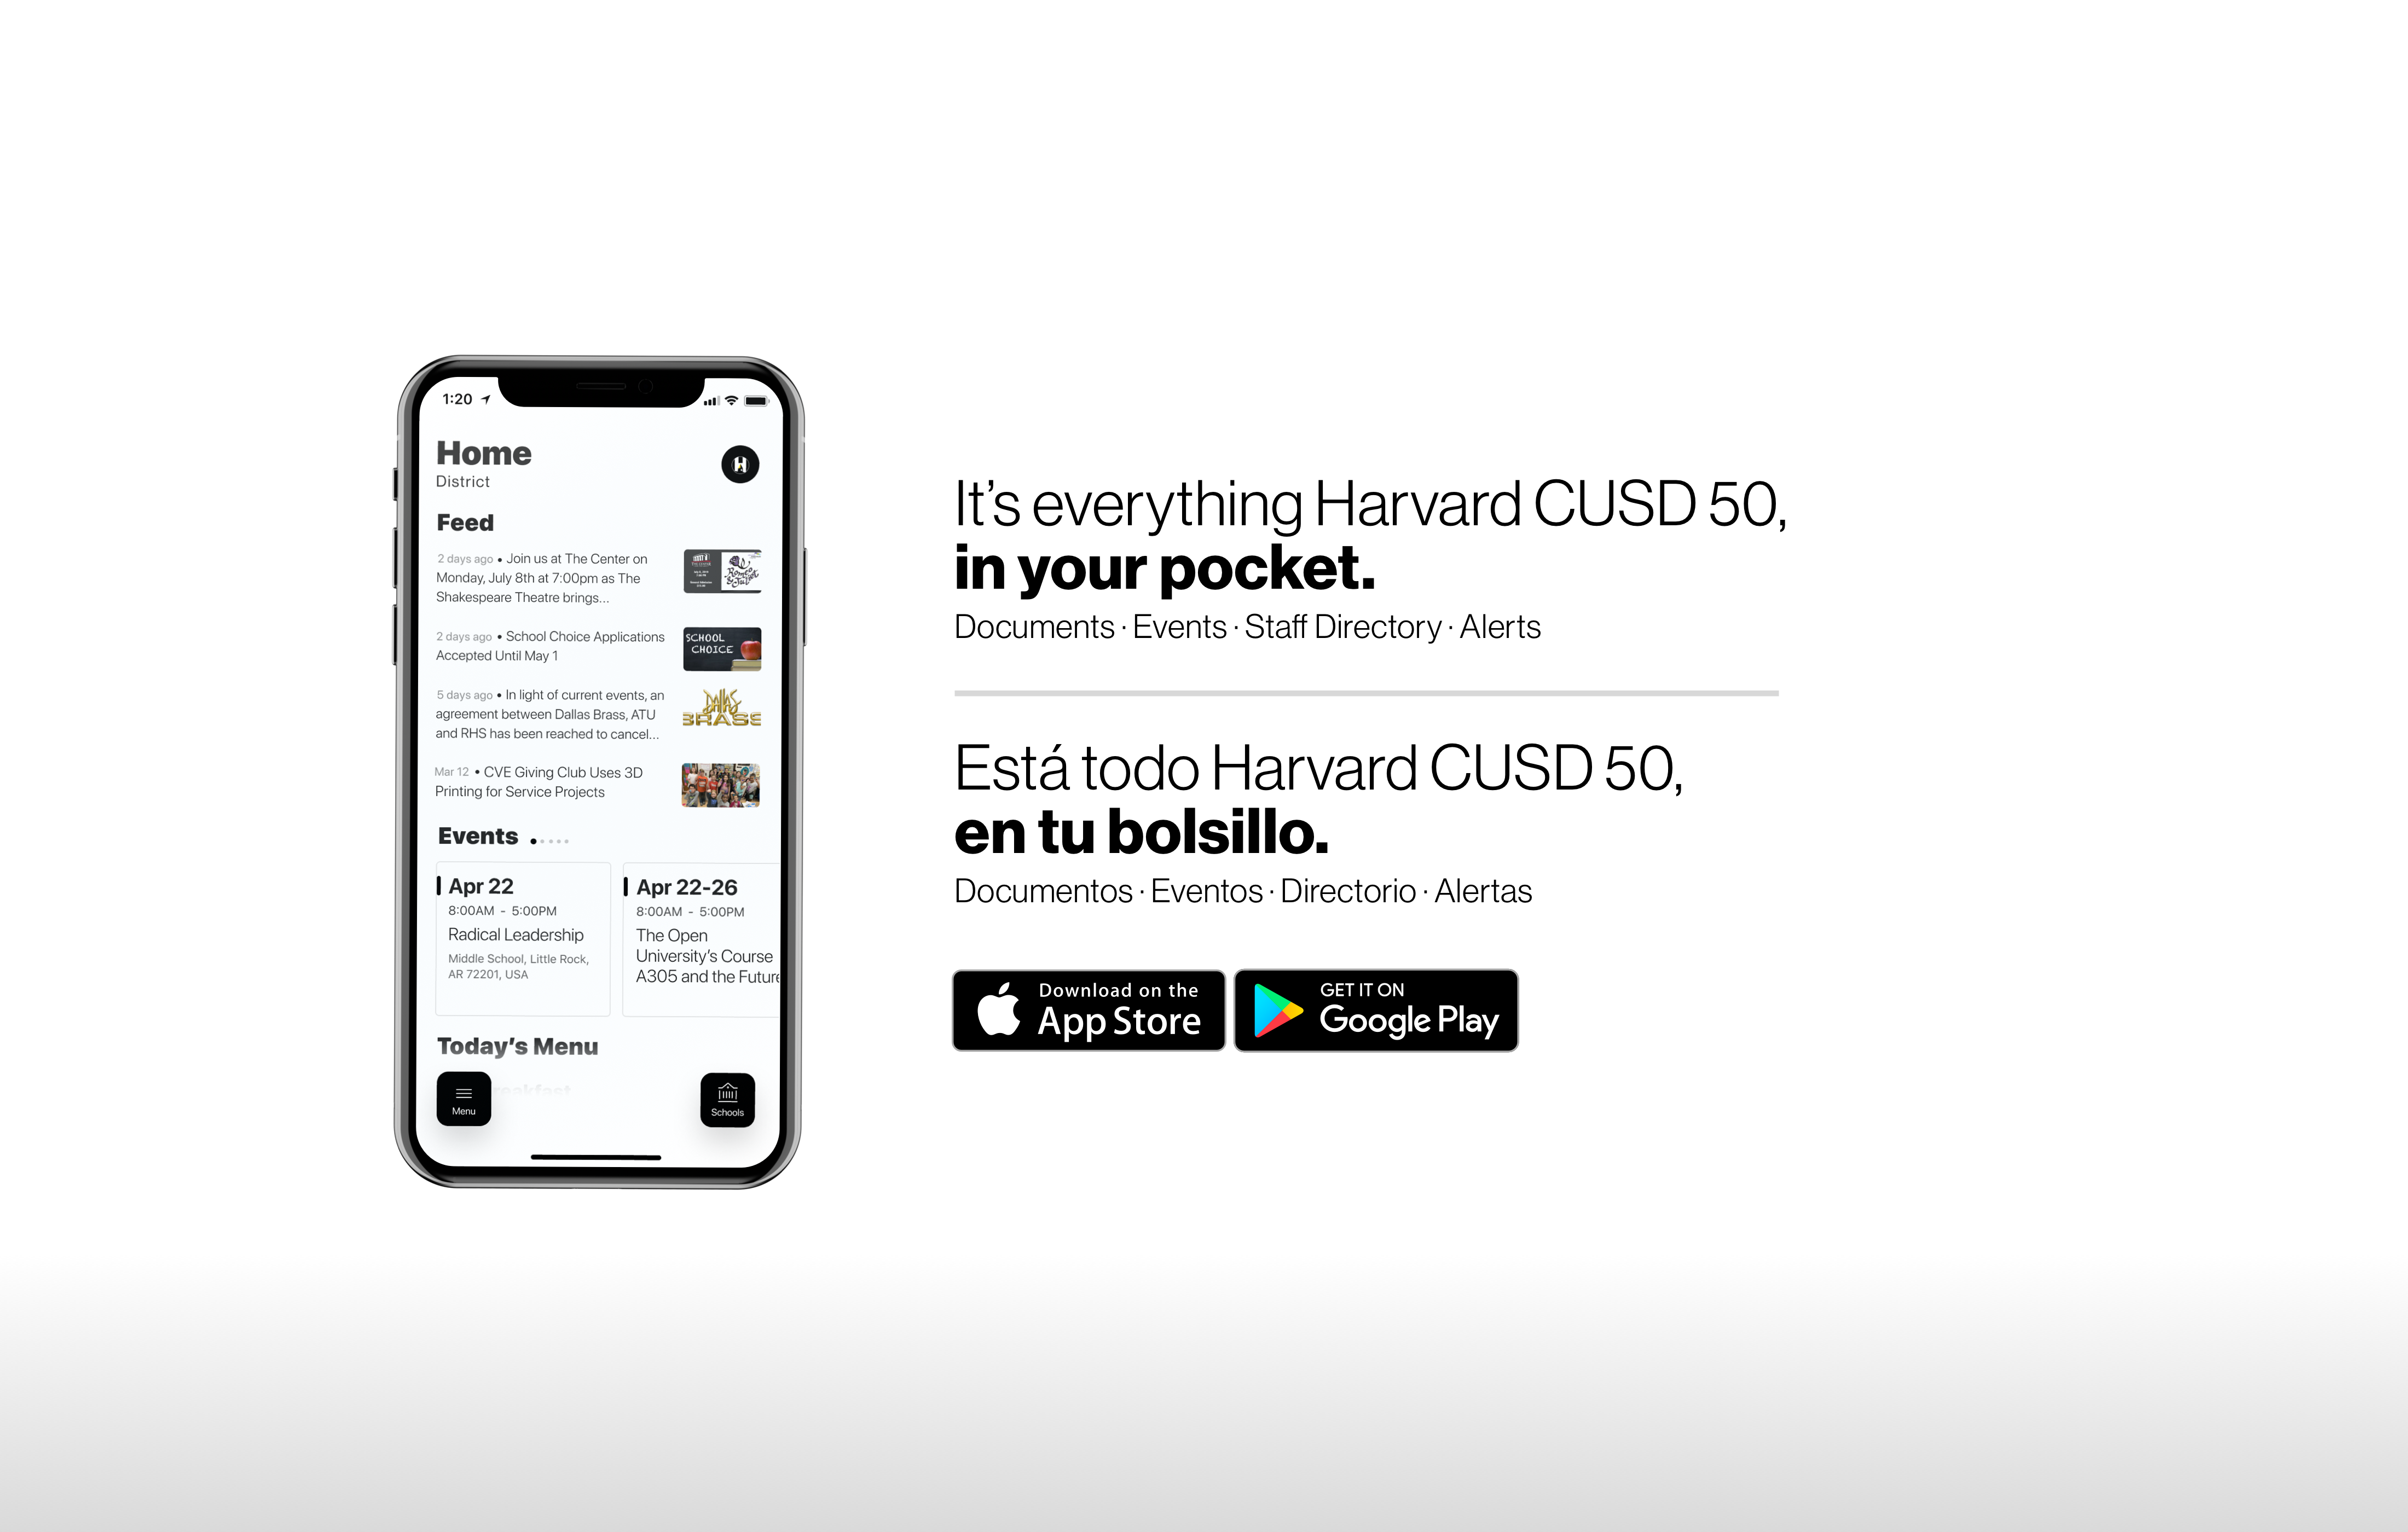 We have a new app, Harvard CUSD 50